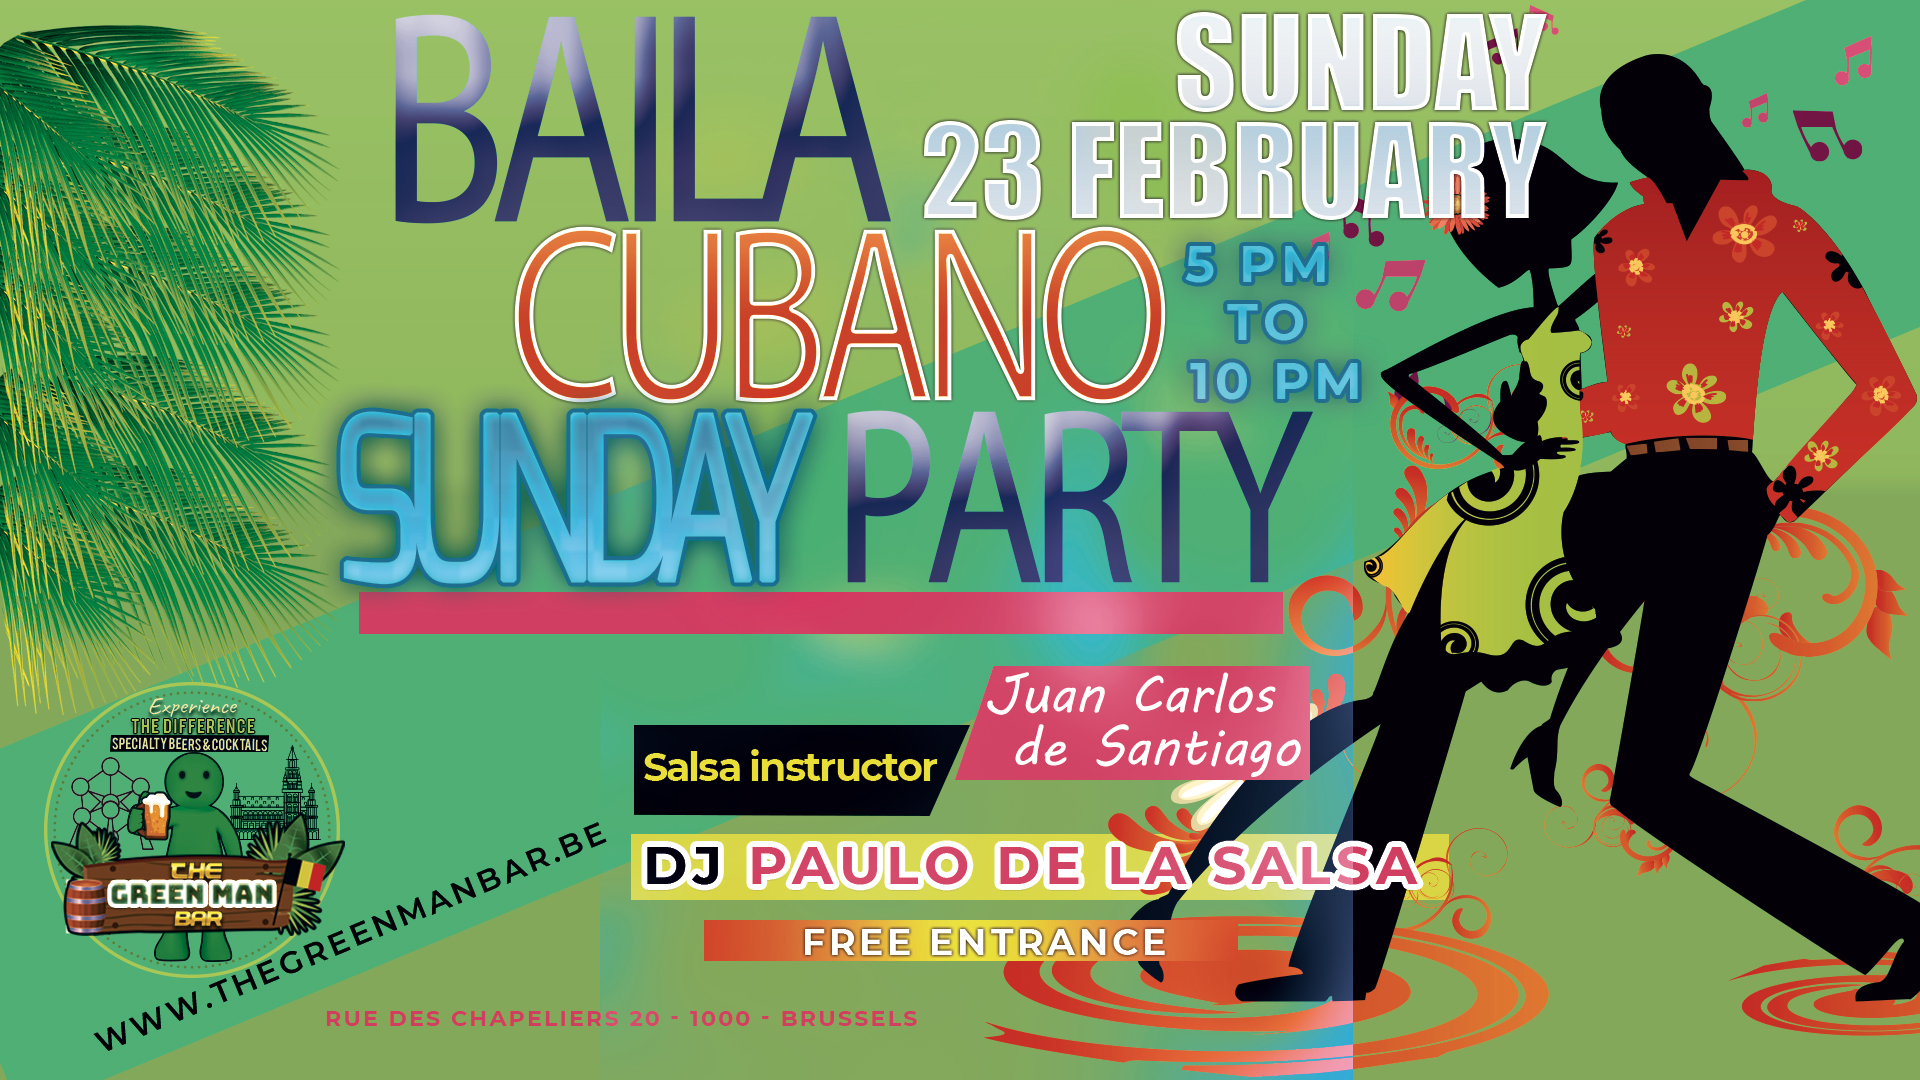 Baila Cubano Sunday with Dj Paulo De La Salsa Free entrance